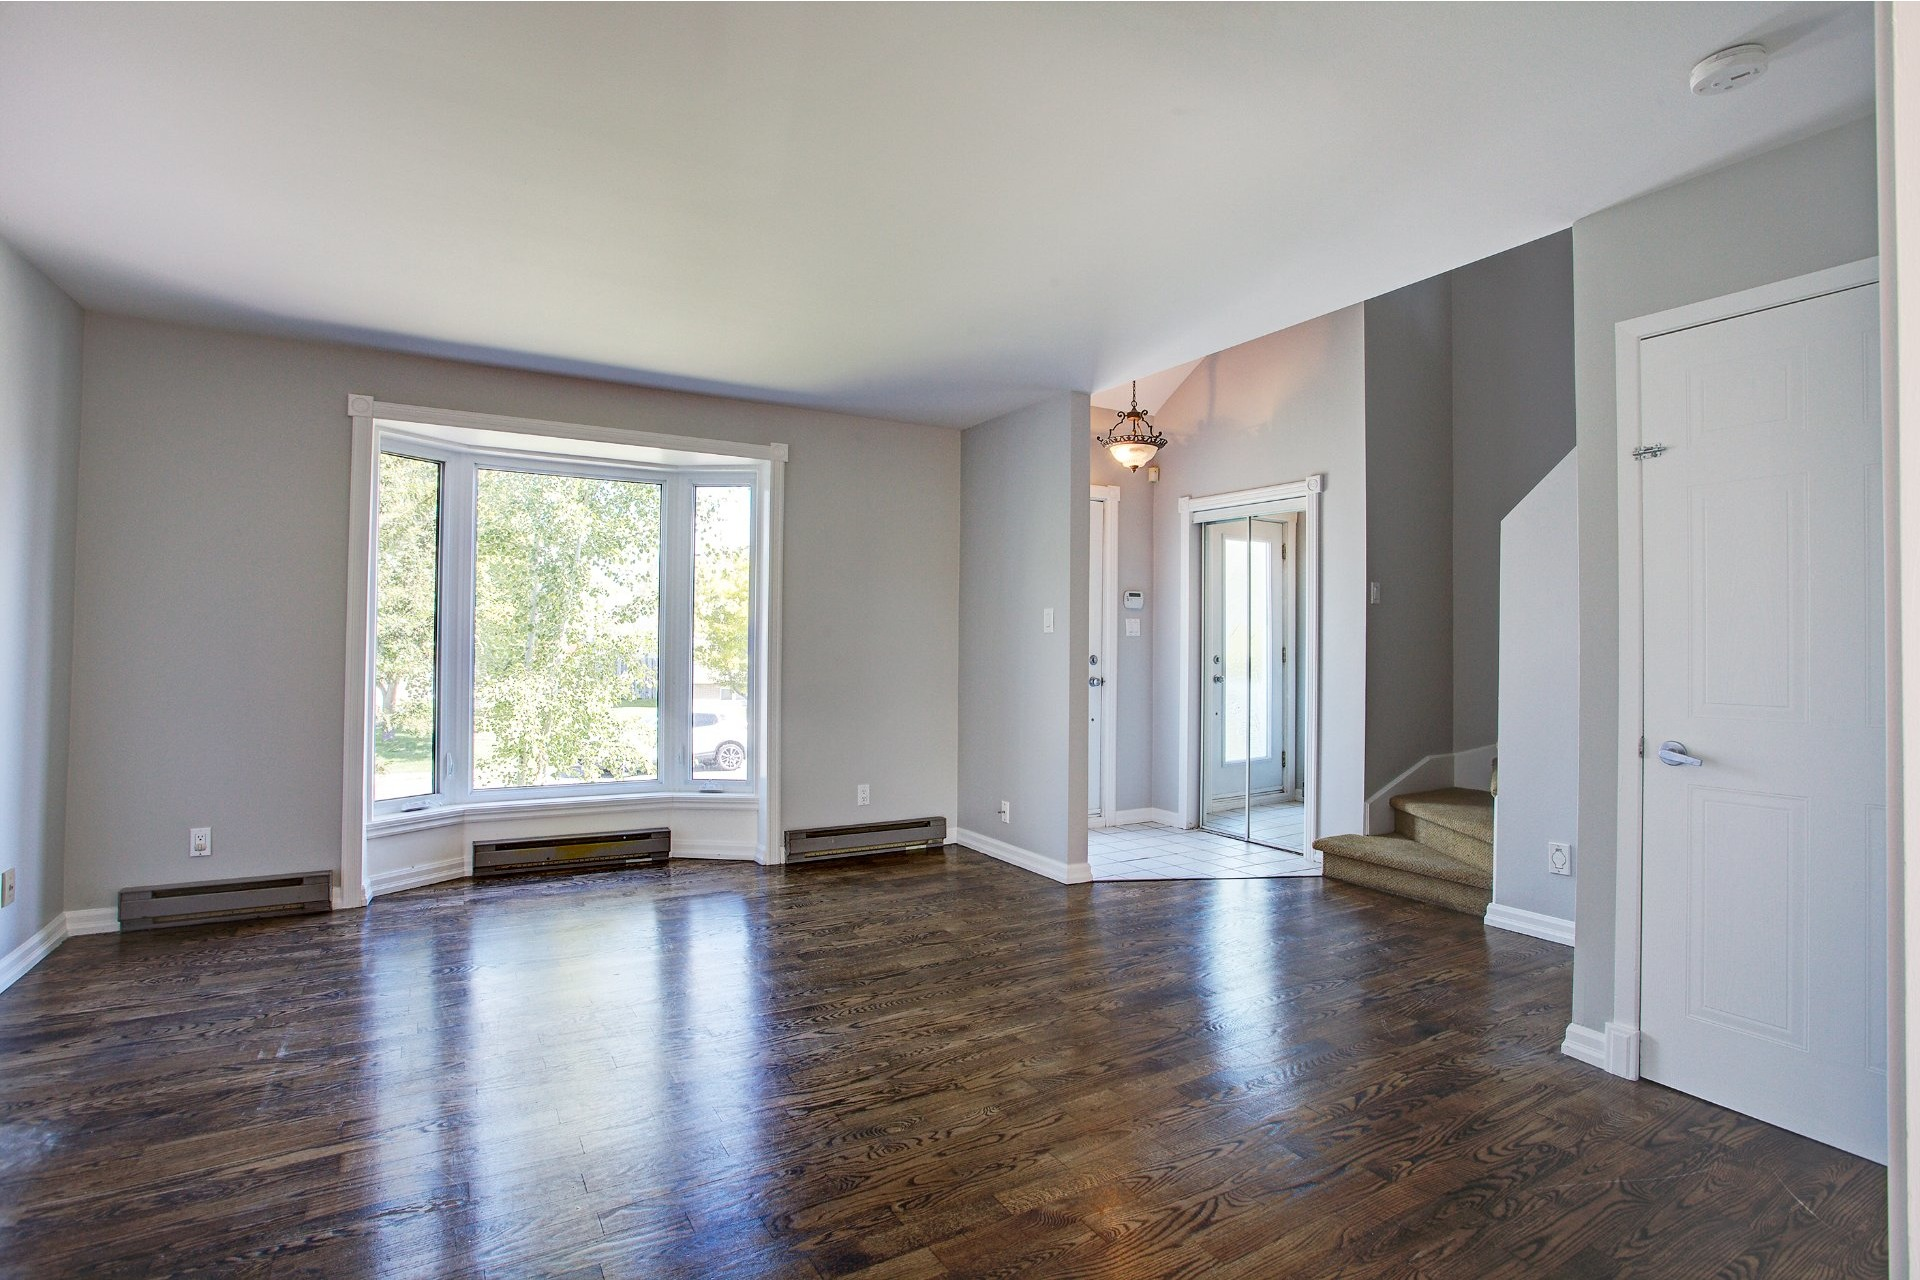 image 3 - House For sale Vaudreuil-Dorion - 10 rooms